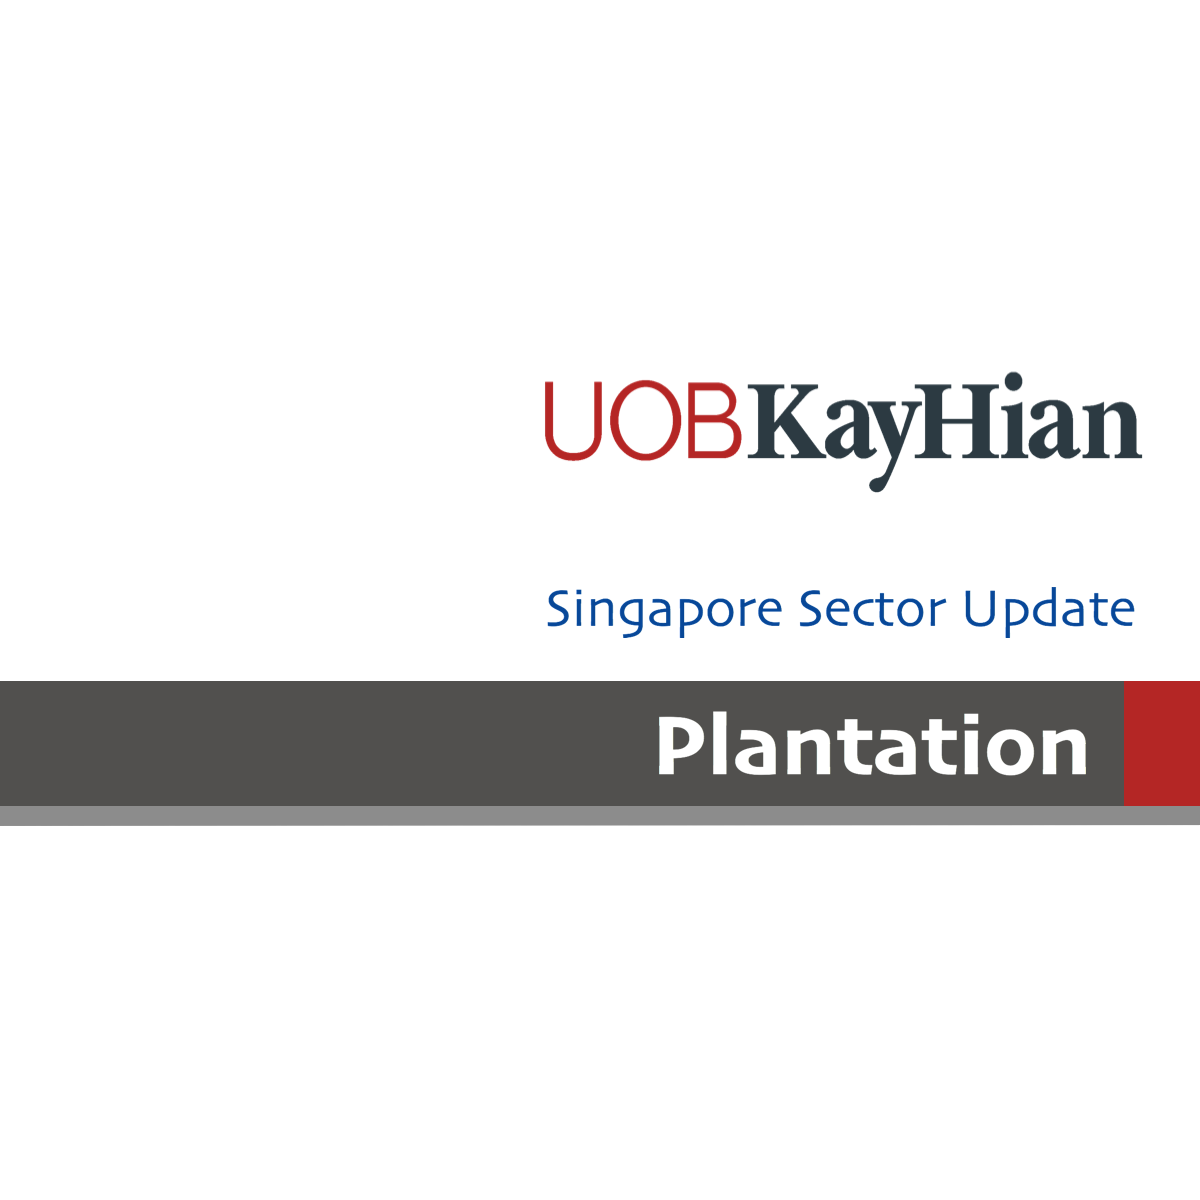 Regional Plantation - UOB Kay Hian 2017-05-08: Indonesia Biodiesel Volume Below Market Expectations